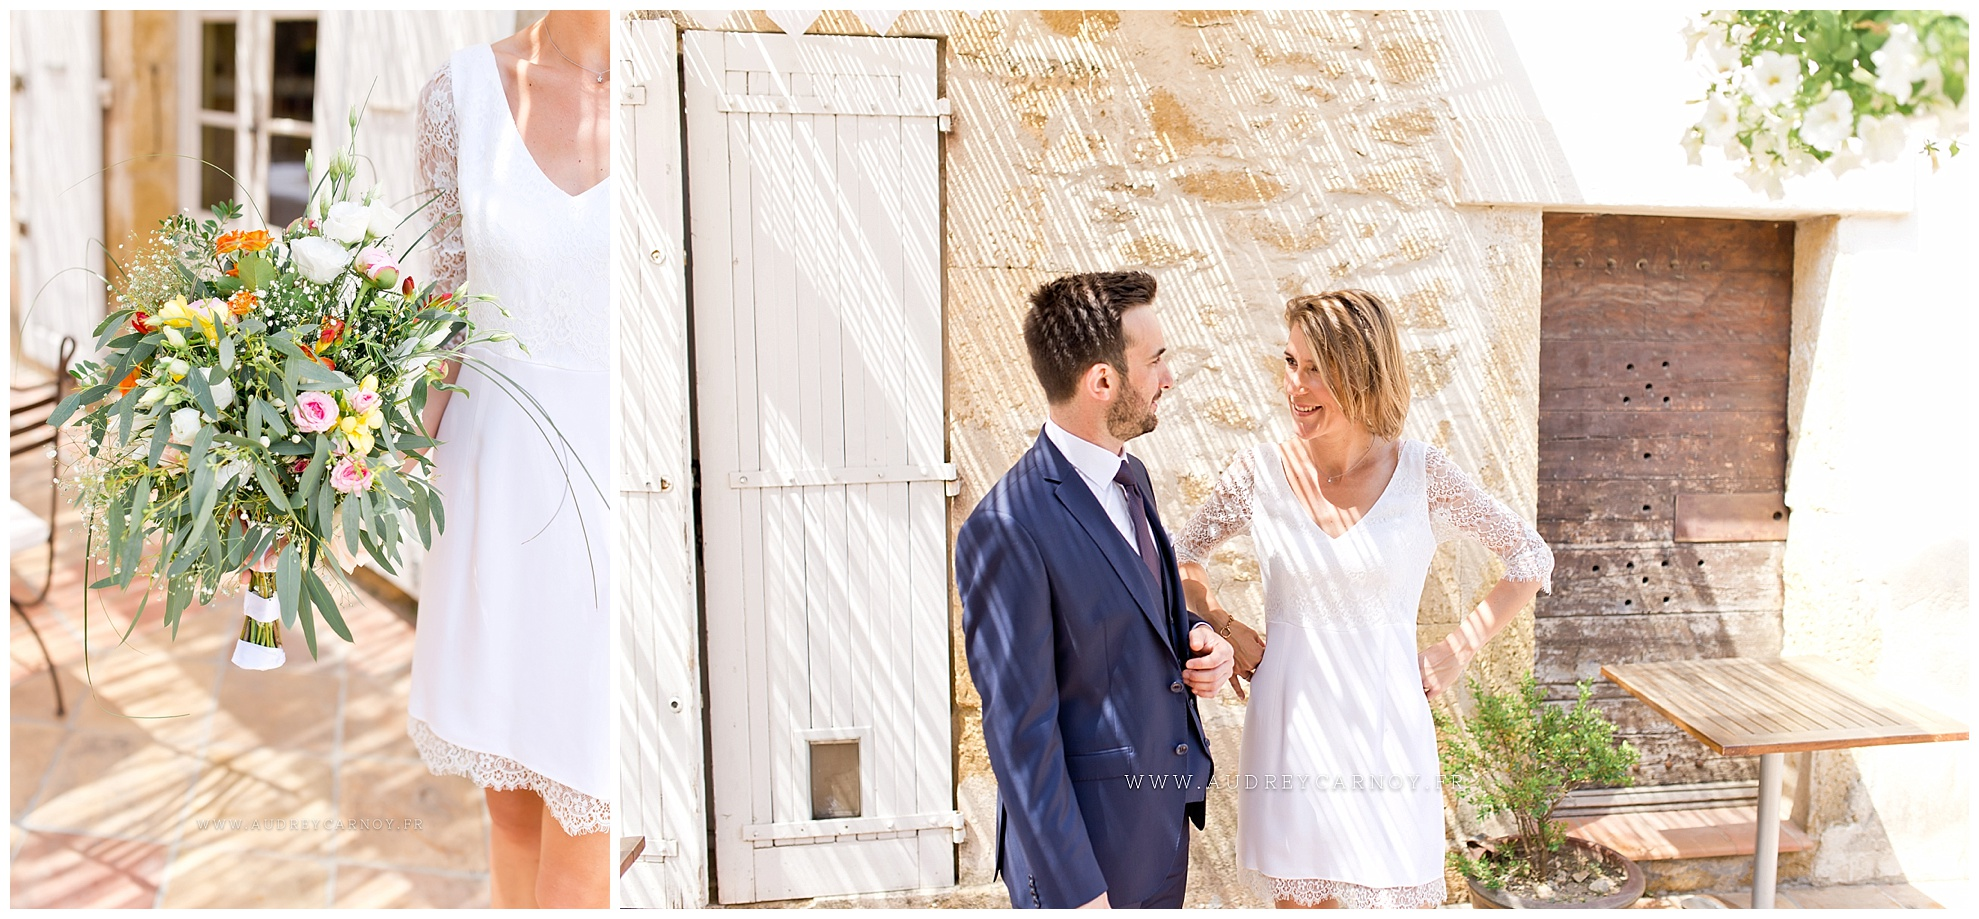 Mariage Pertuis | Laurence & Anthony 7